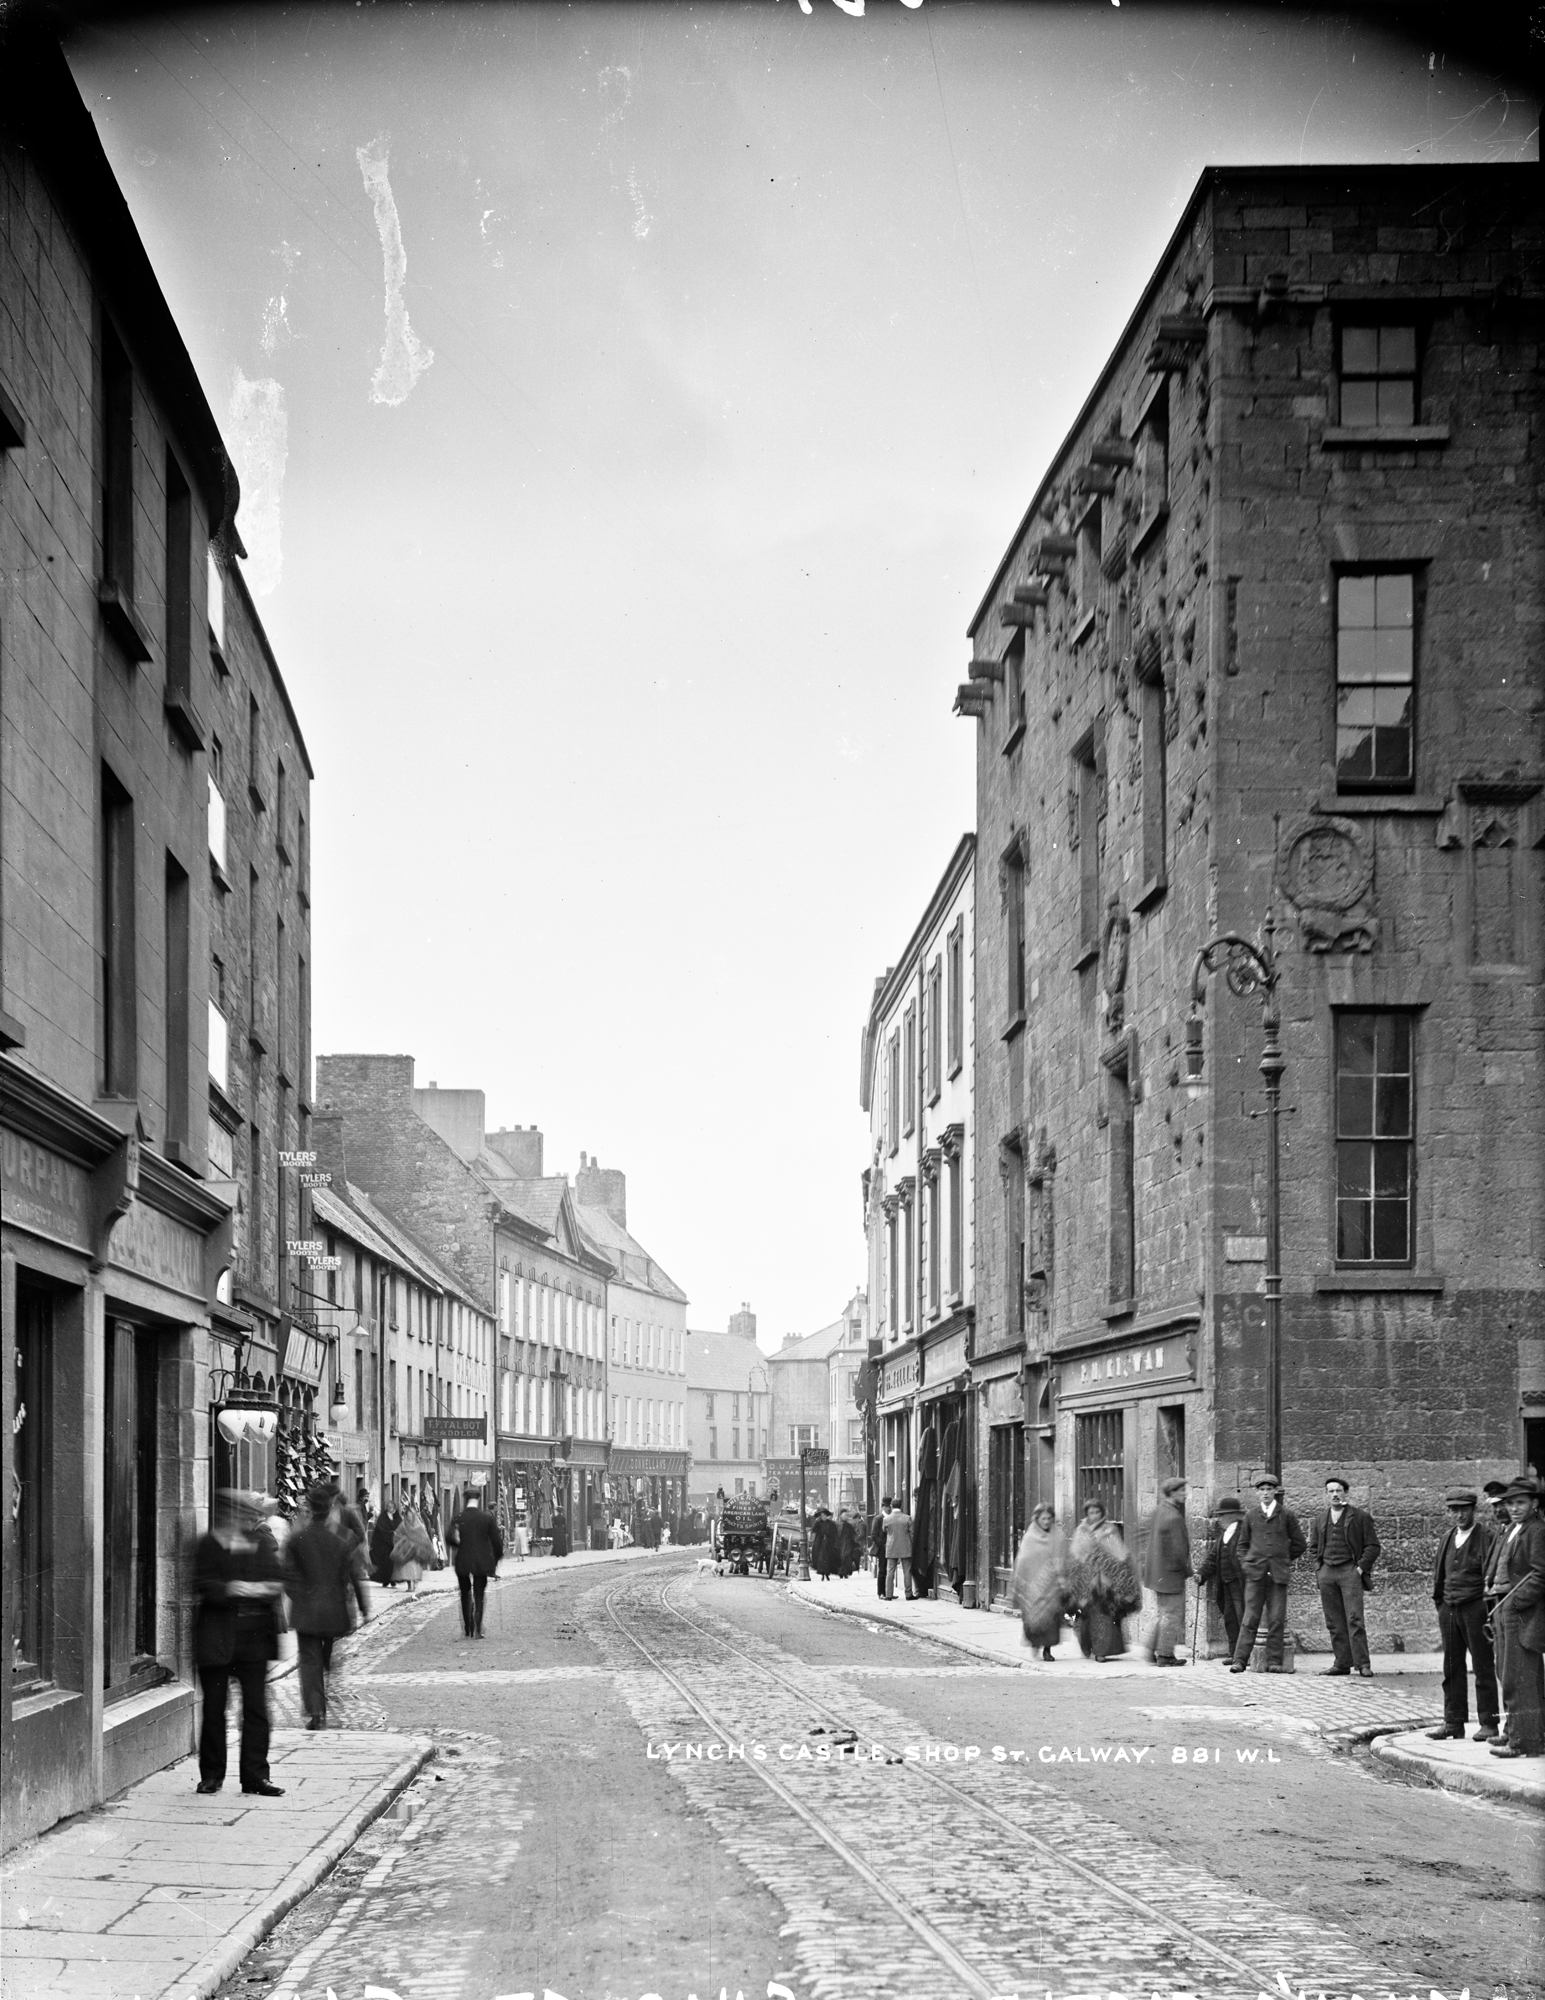 Lynchs Castle, Shop Street, Galway